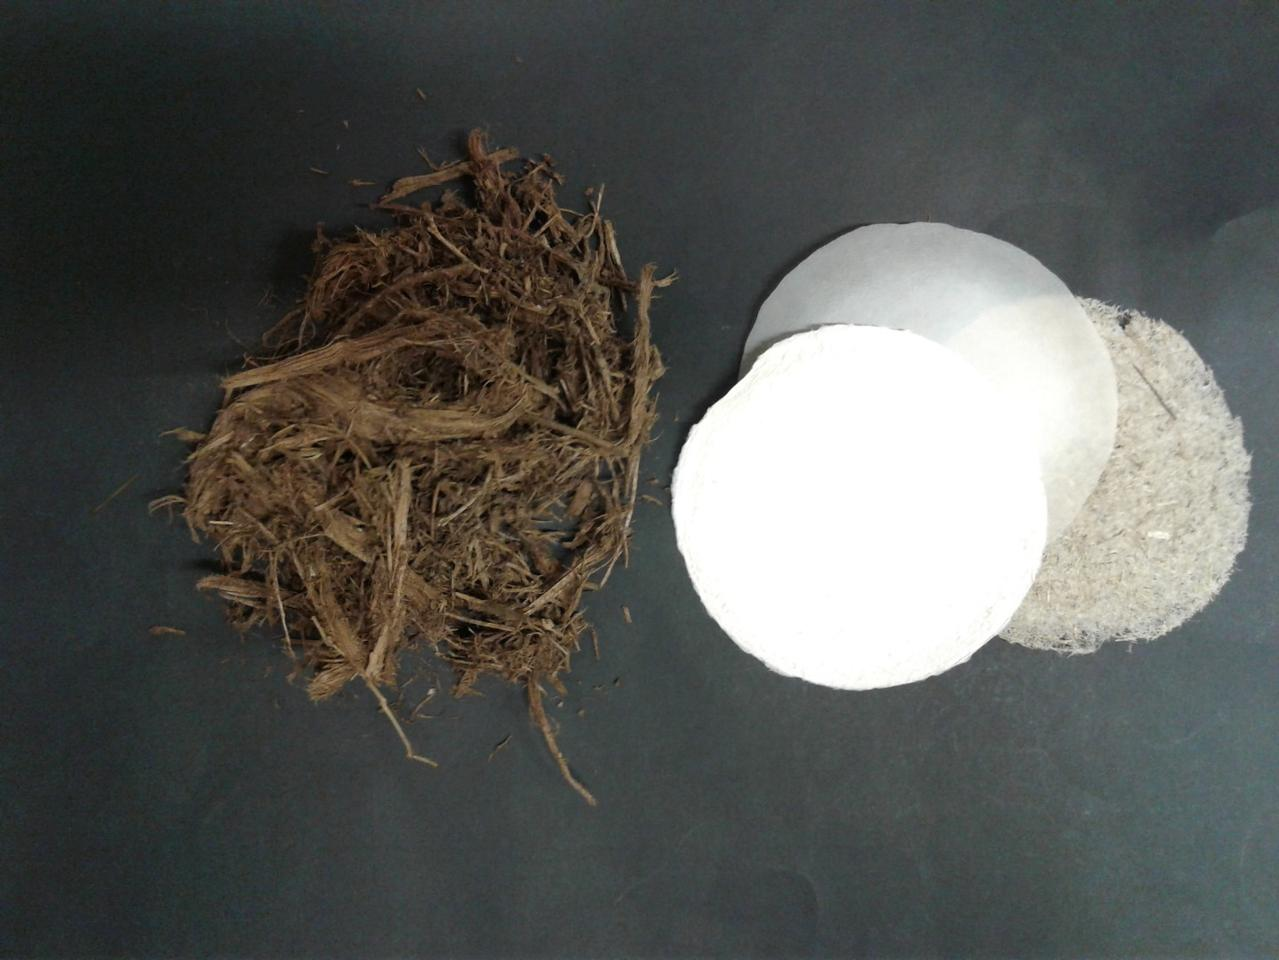 Elephant dung (left), along with paper made from it